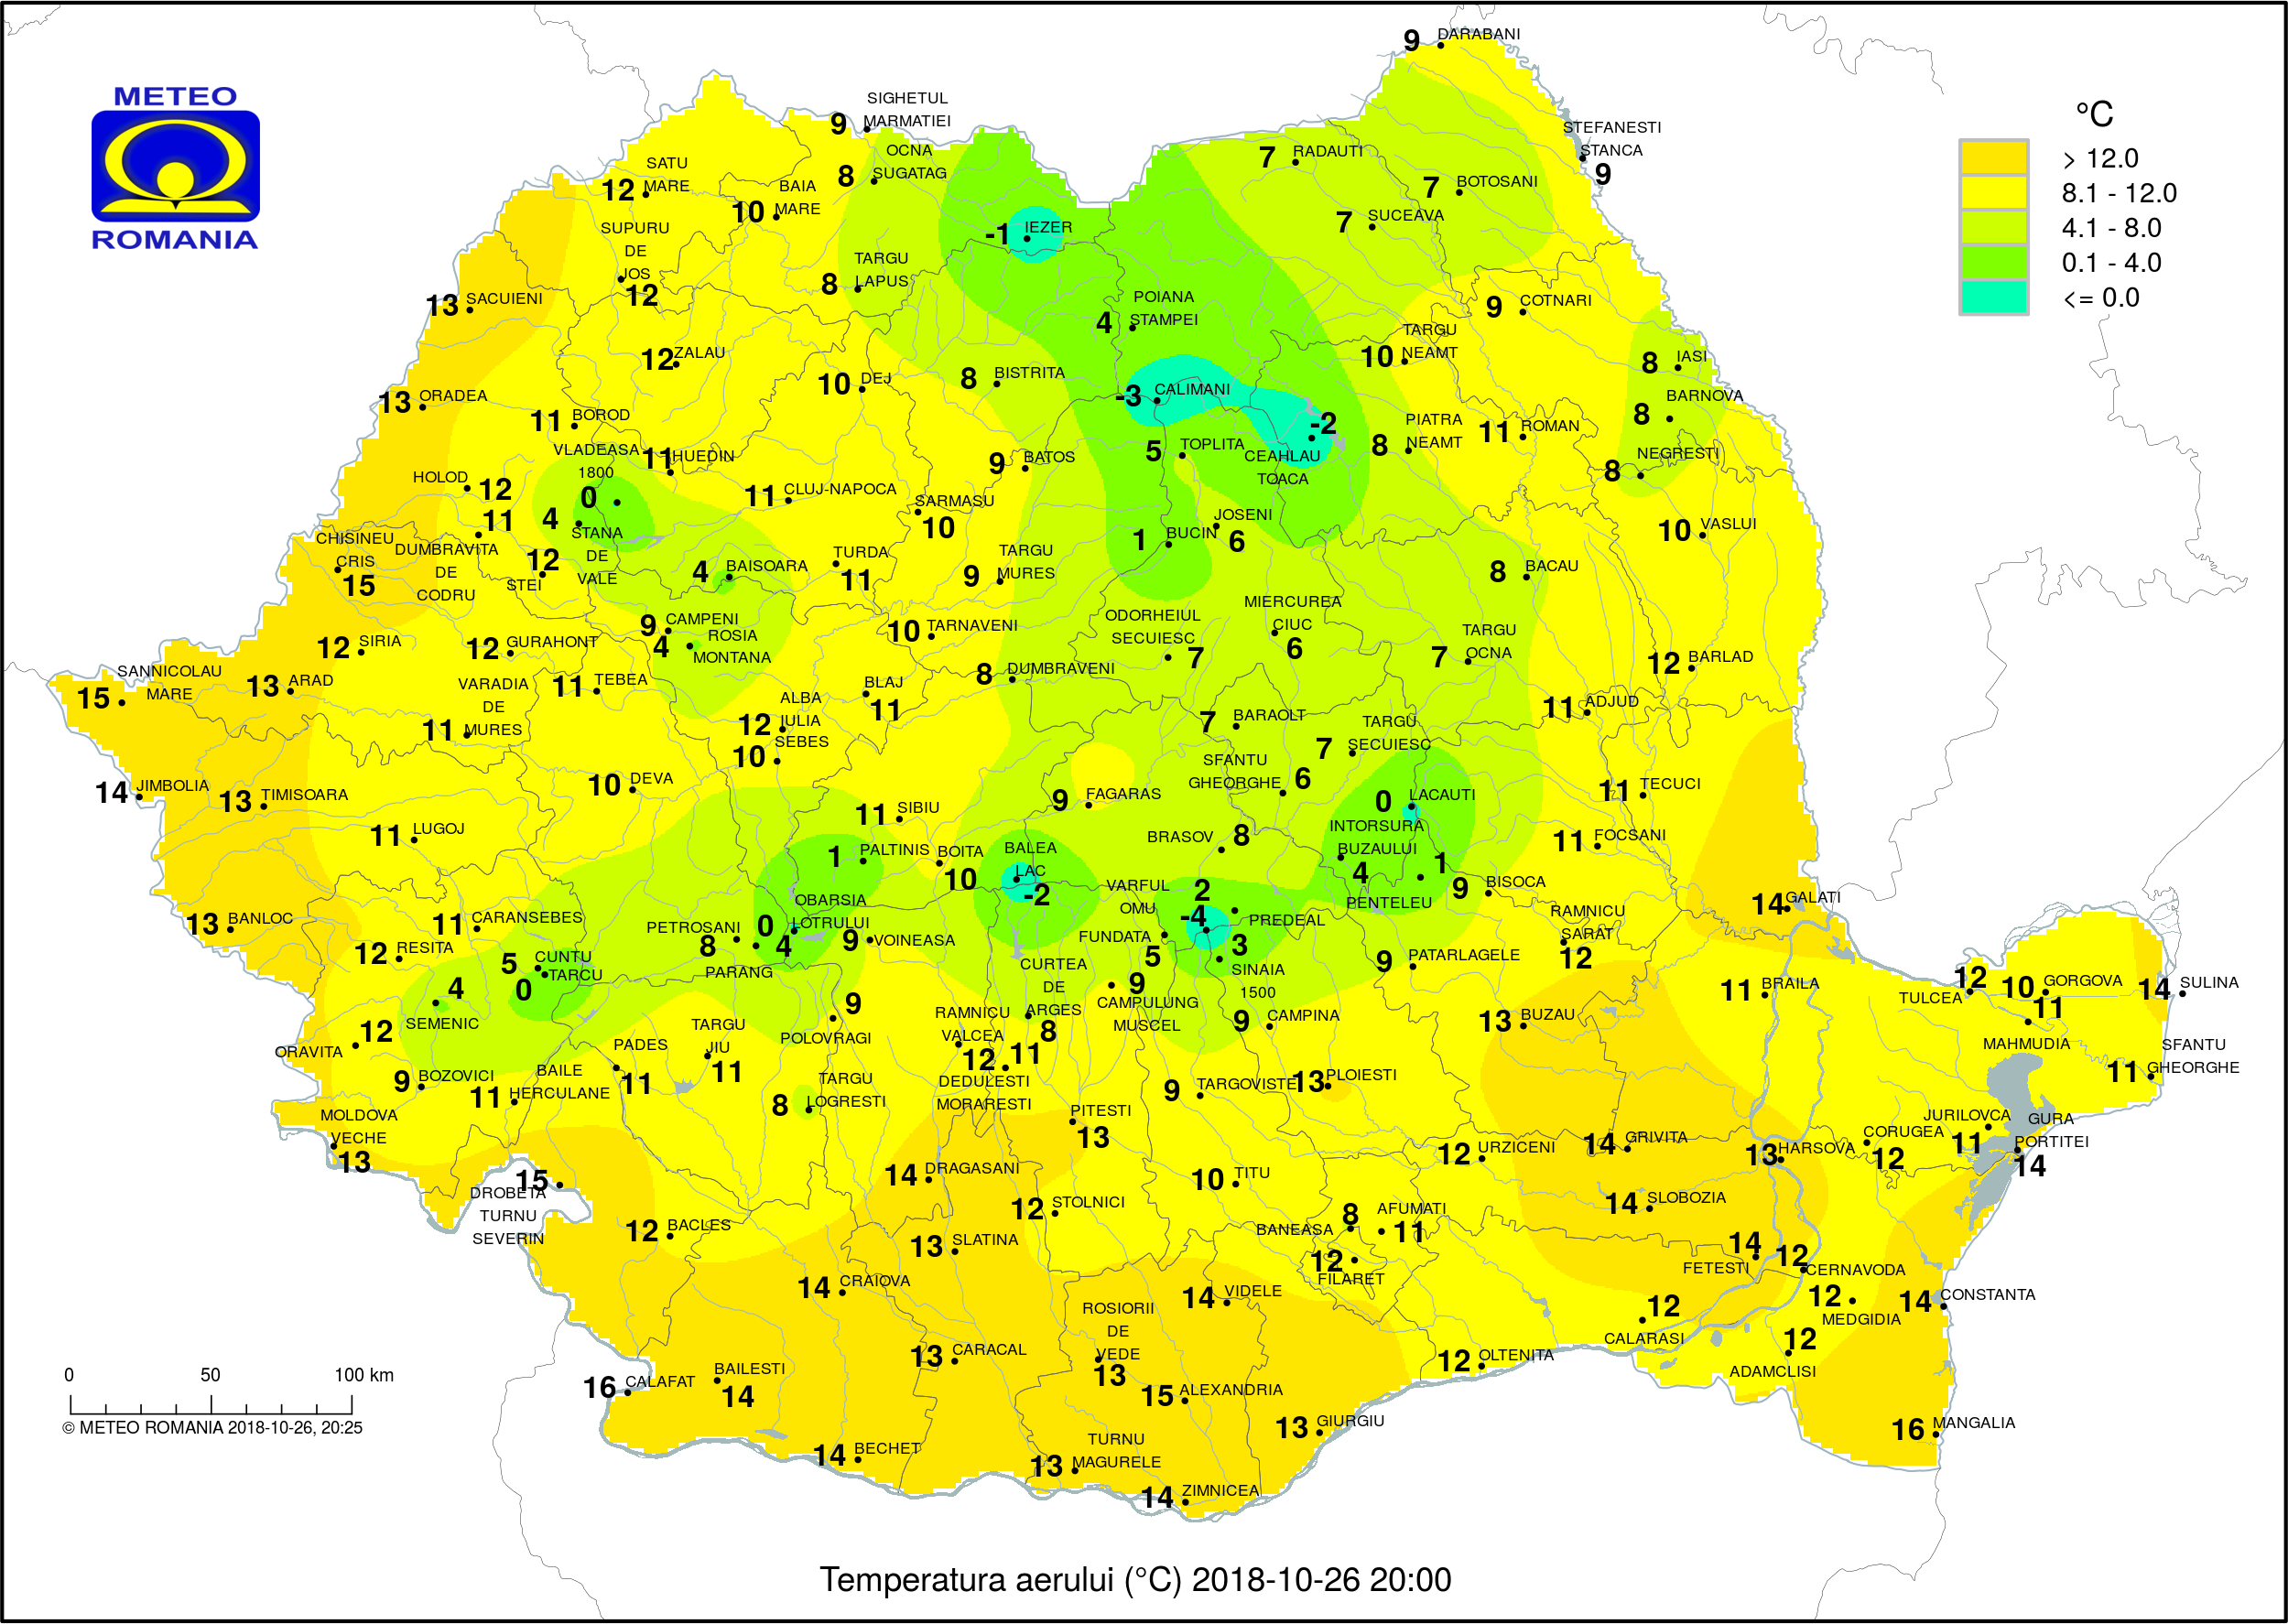 Temperaturi ora 20 #Romania (Romania evening temperatures)